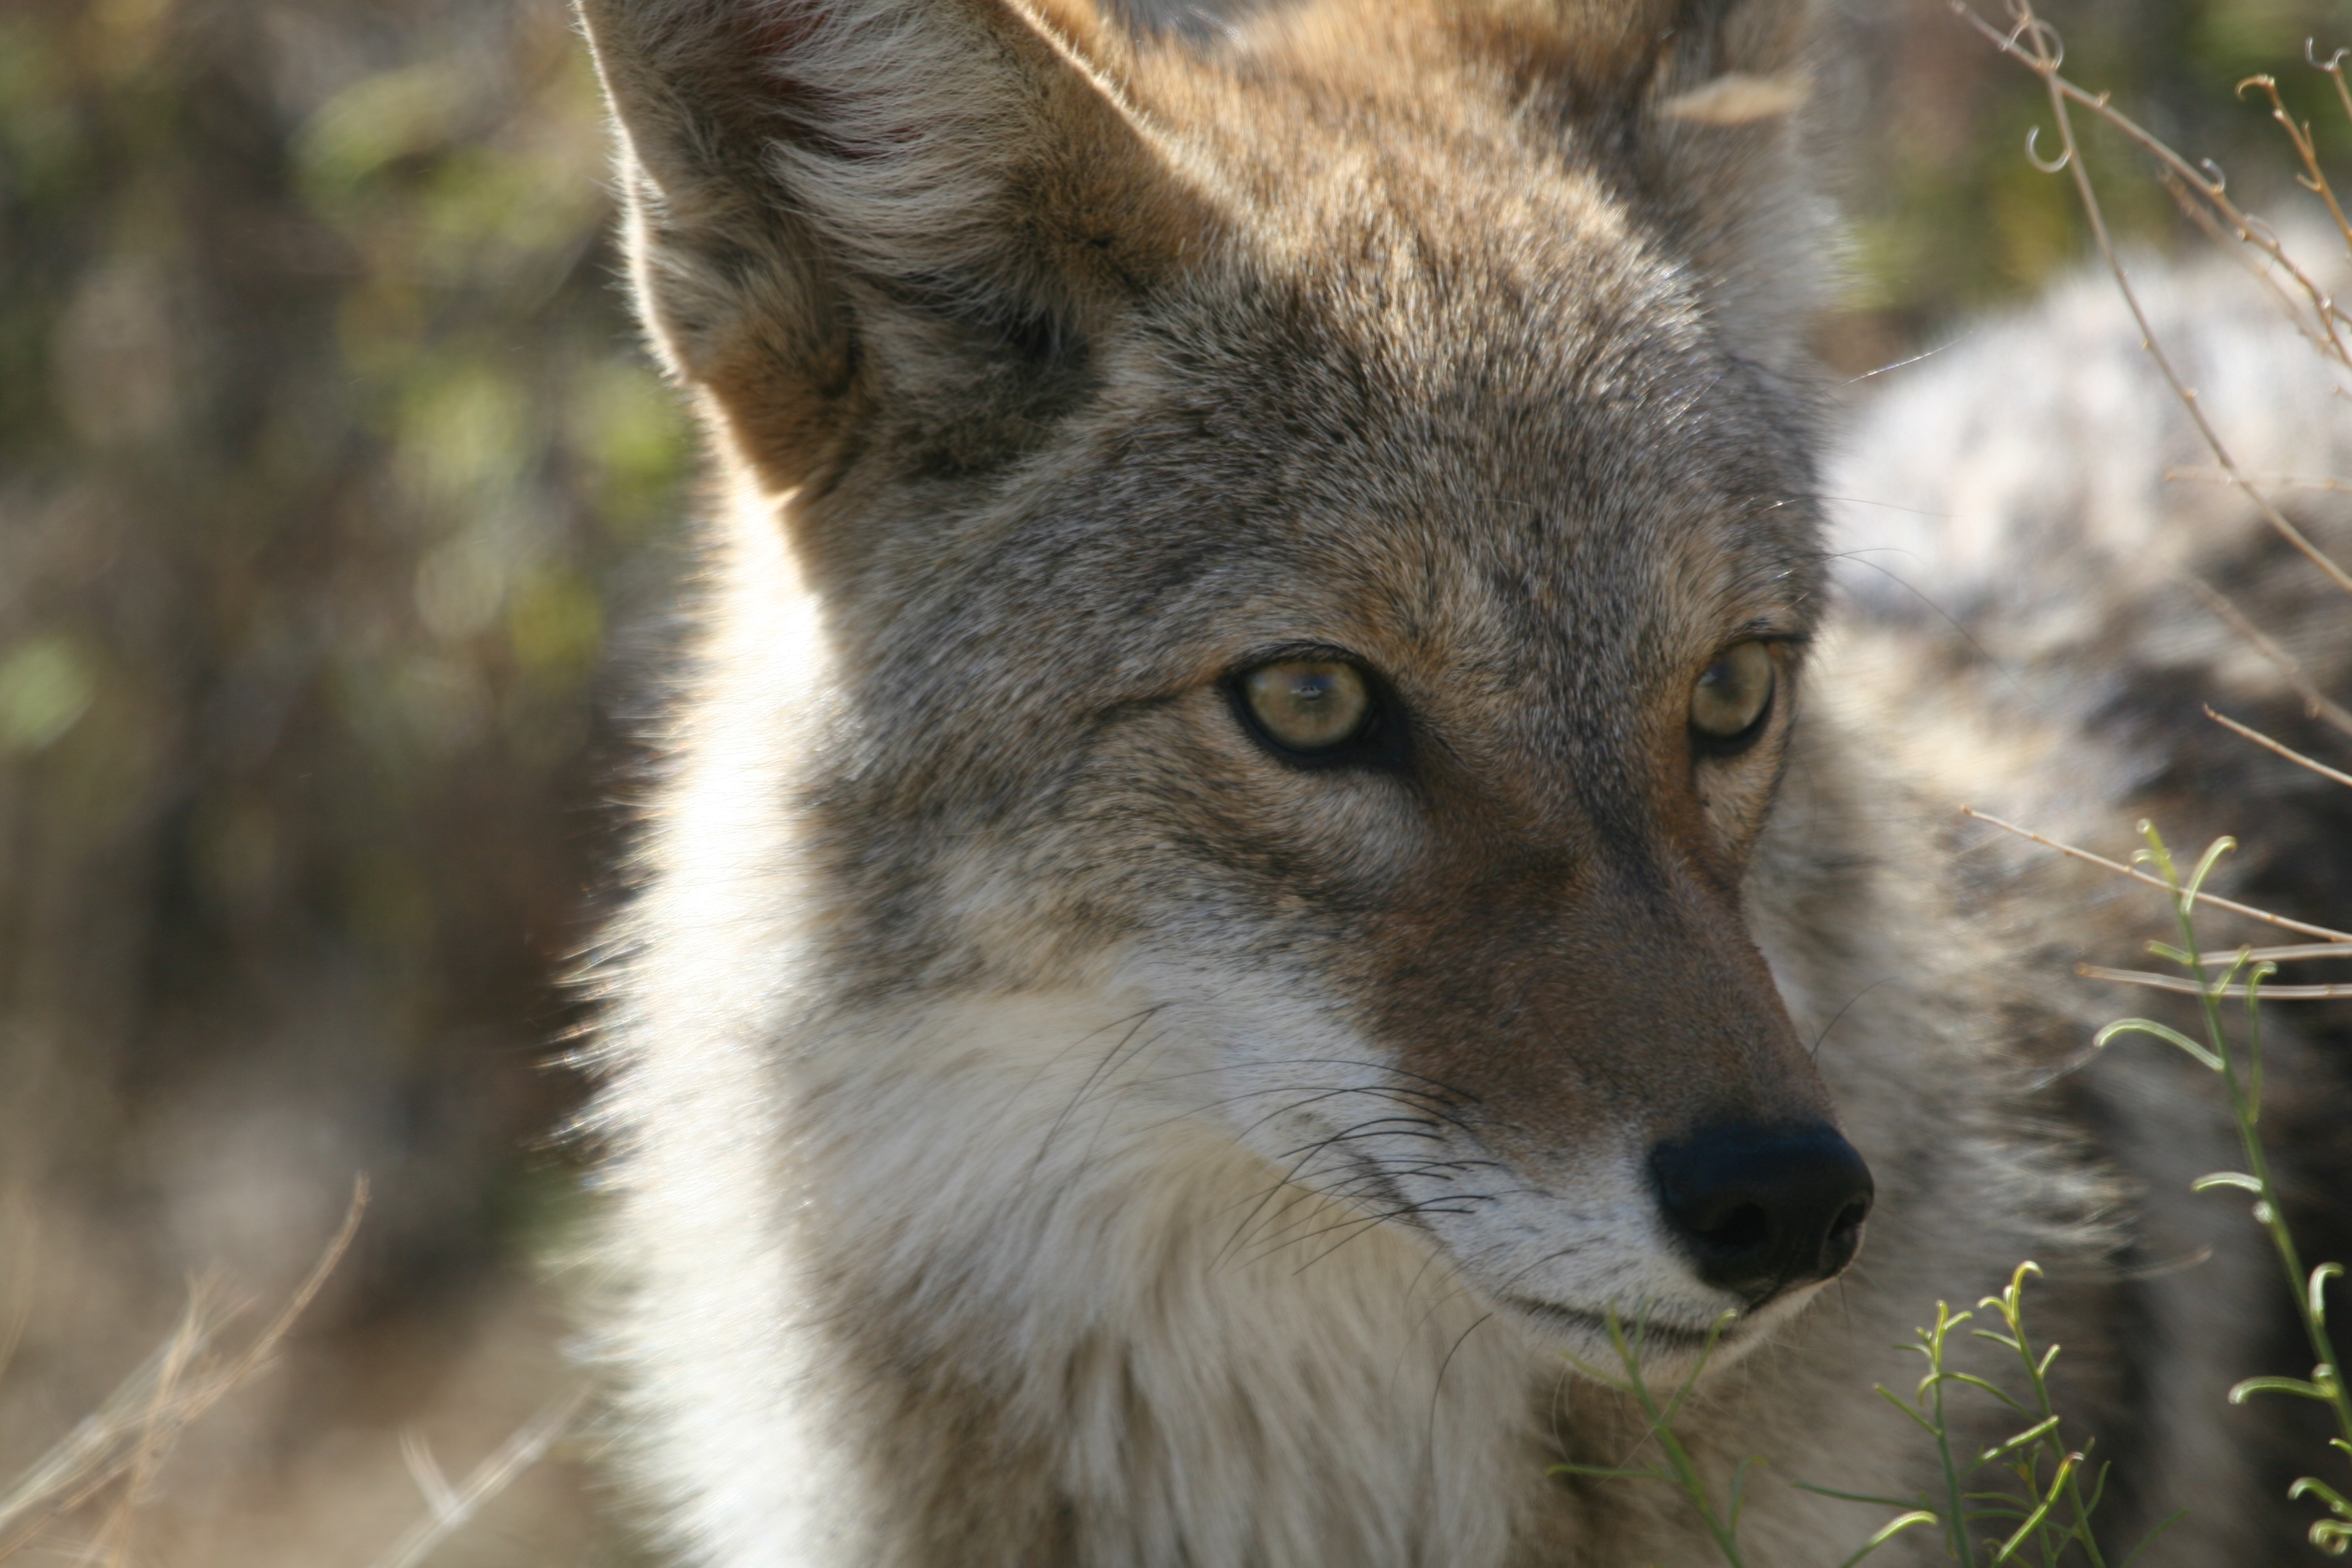 A coyote pricks its ears to sounds in its environment